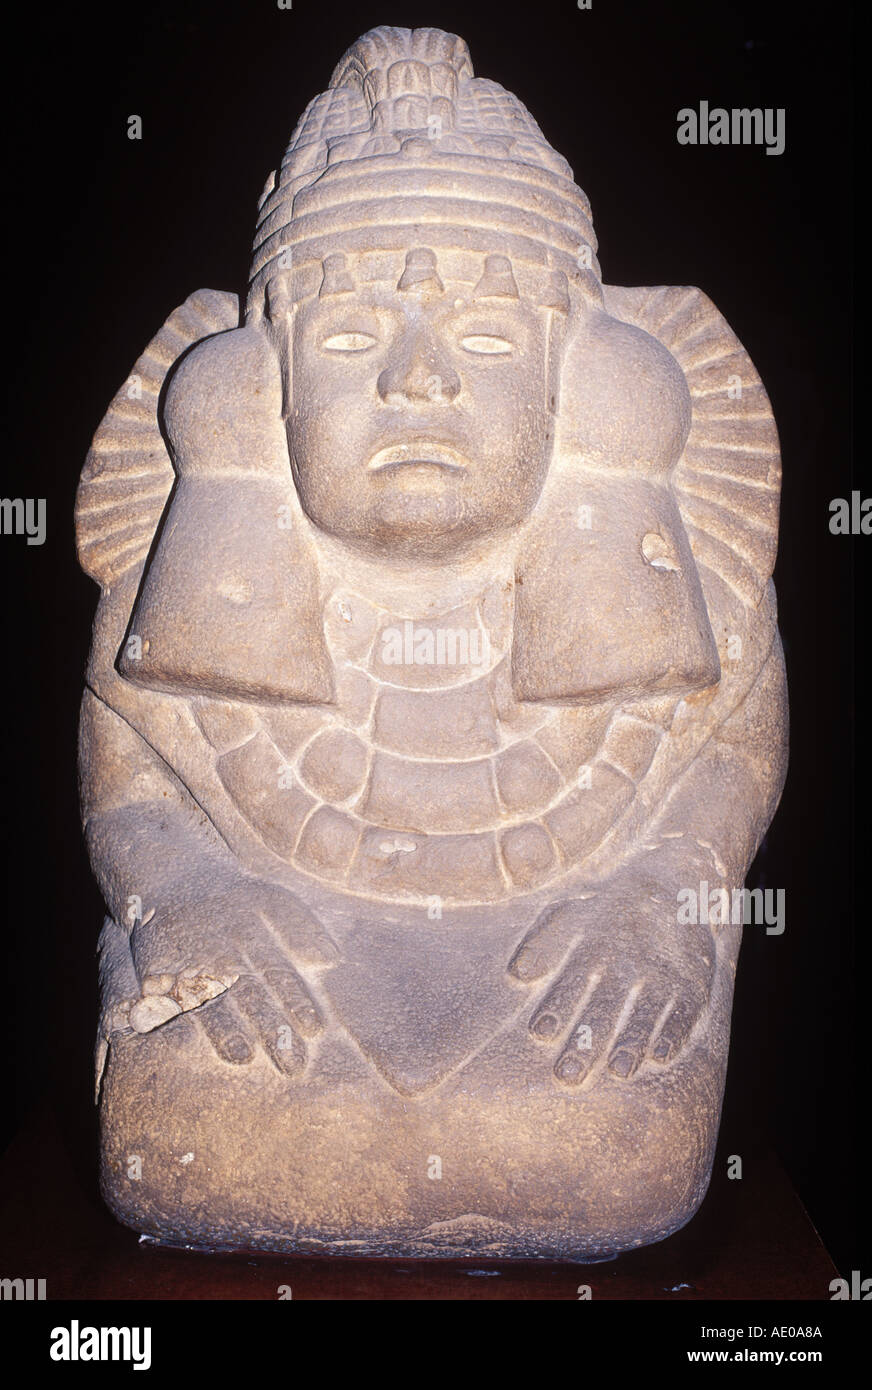 Stone Carving of God called Xilonen National Museum of Anthropology Huastec Museu Nacional de Antropologia Anthropological Museo - Stock Image